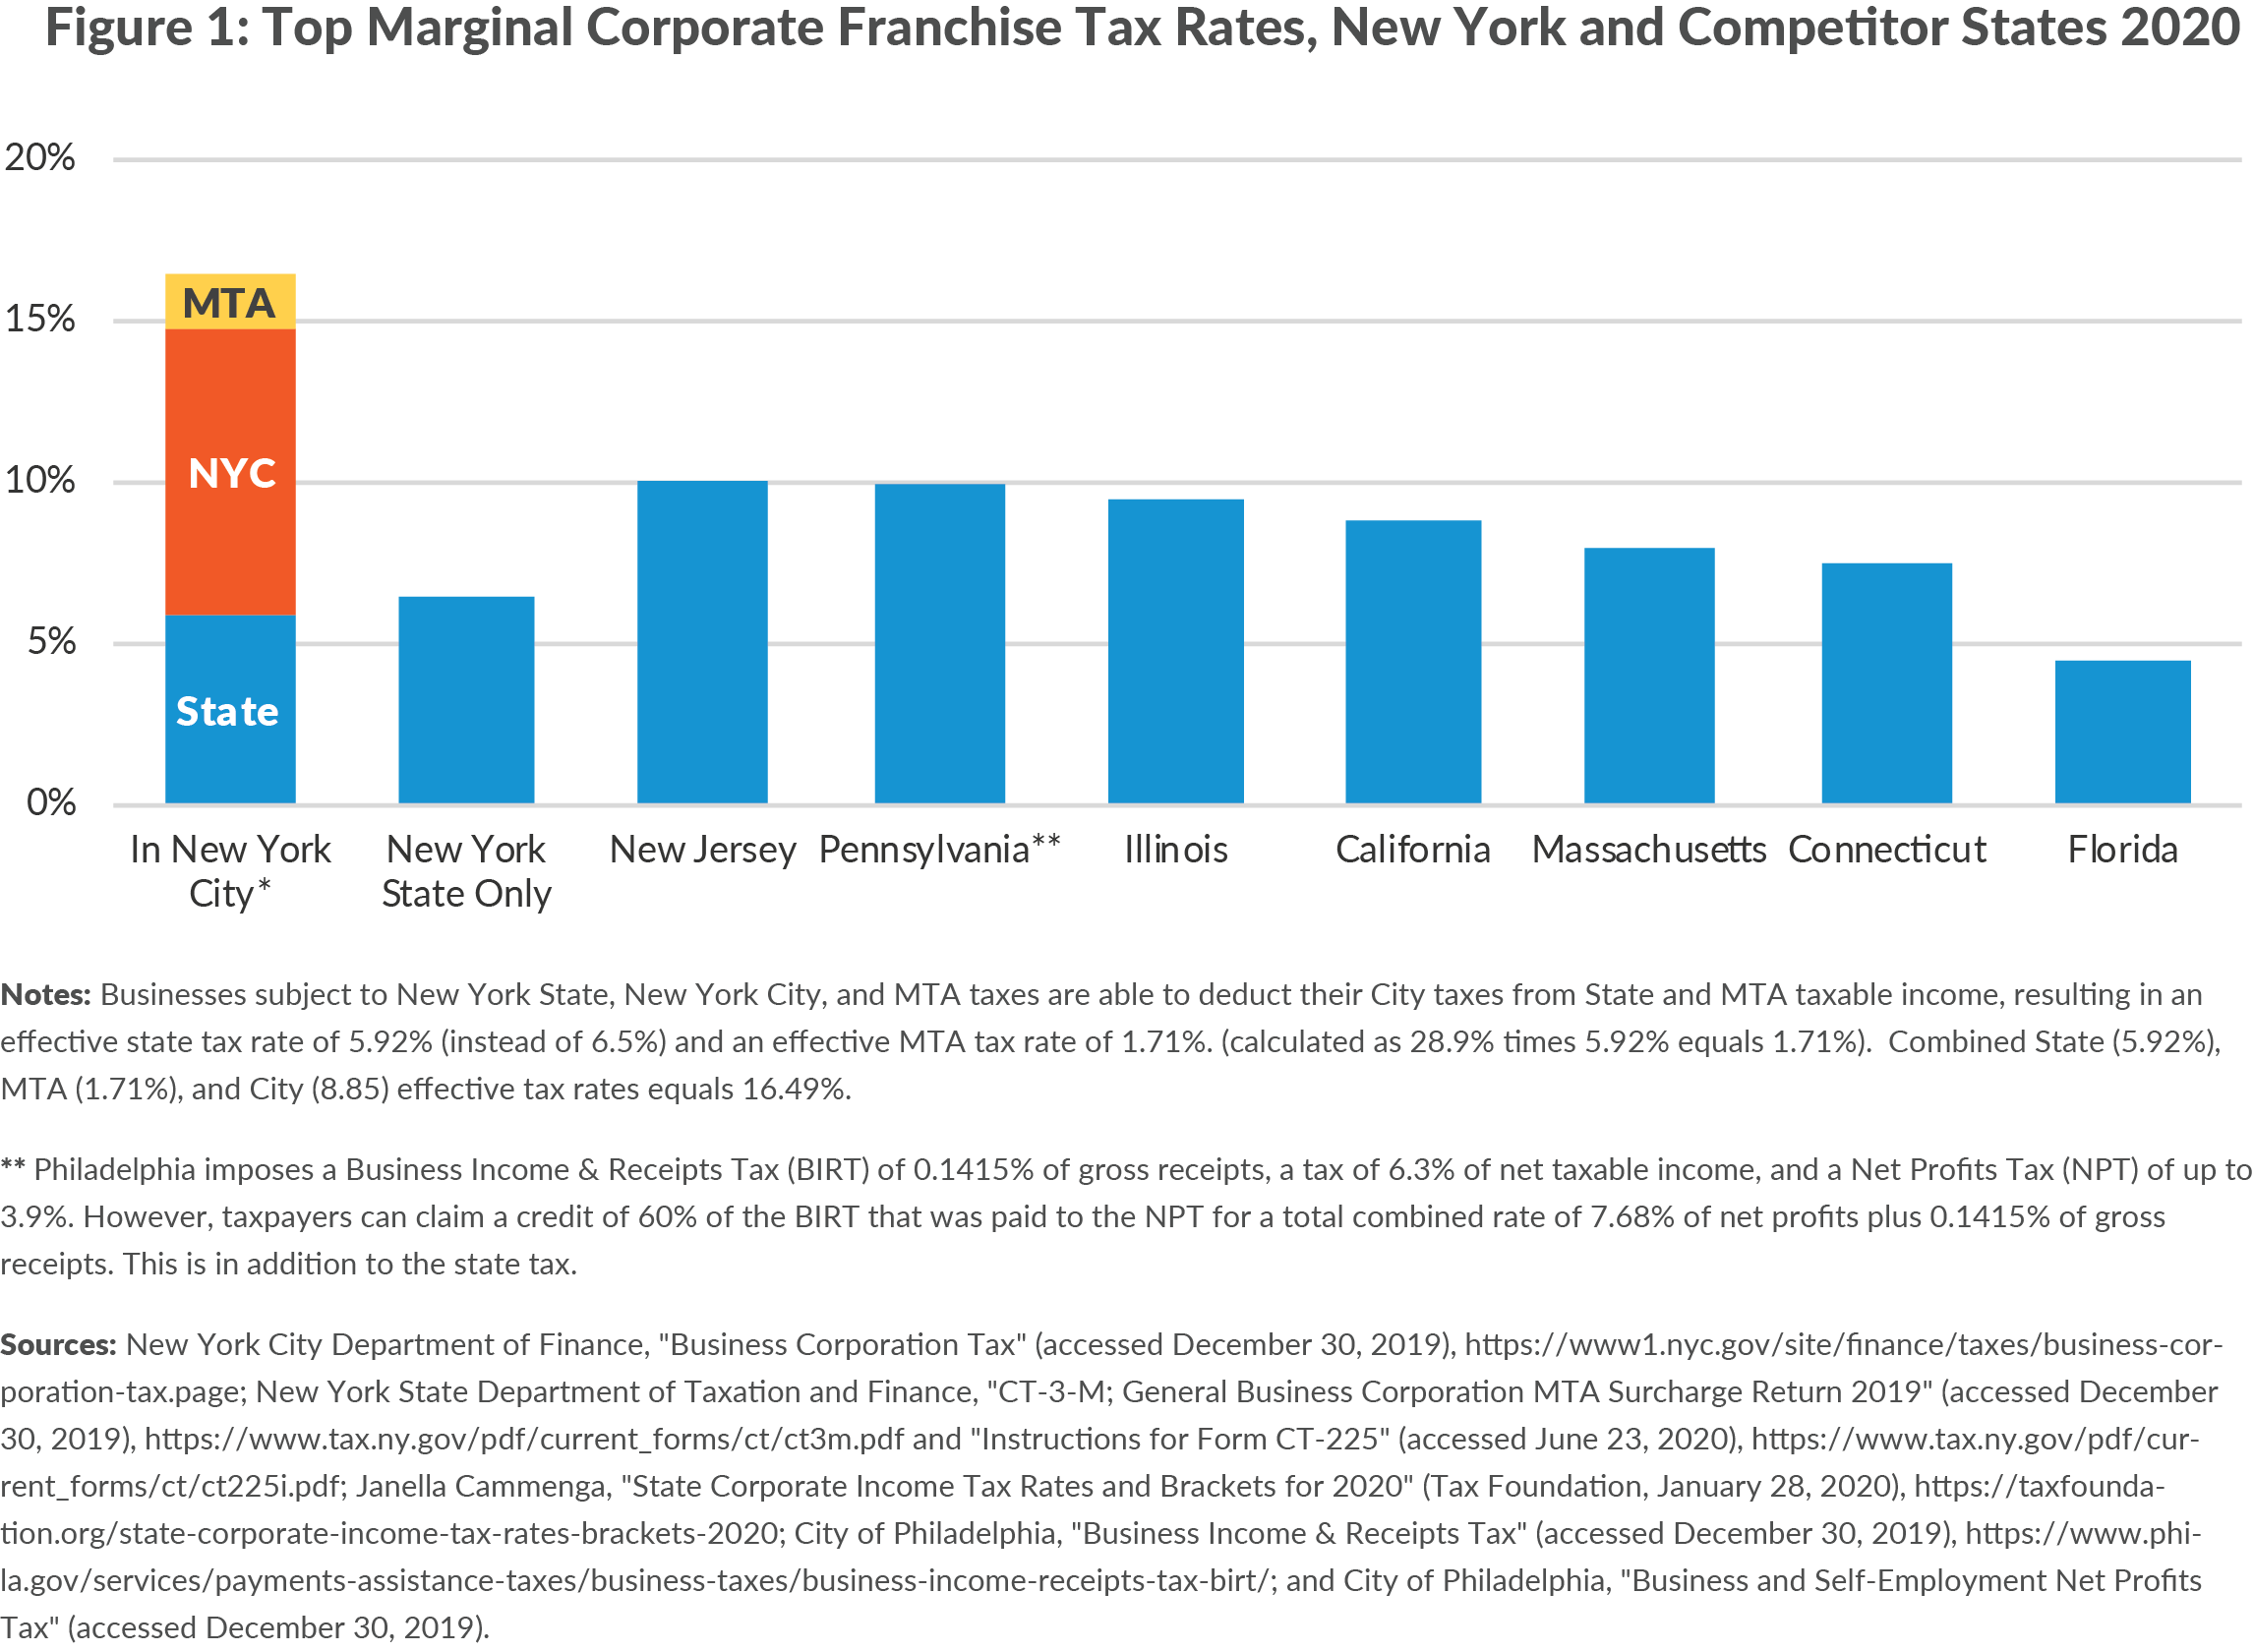 Figure 1: Top Marginal Corporate Franchise Tax Rates, New York and Competitor States 2020